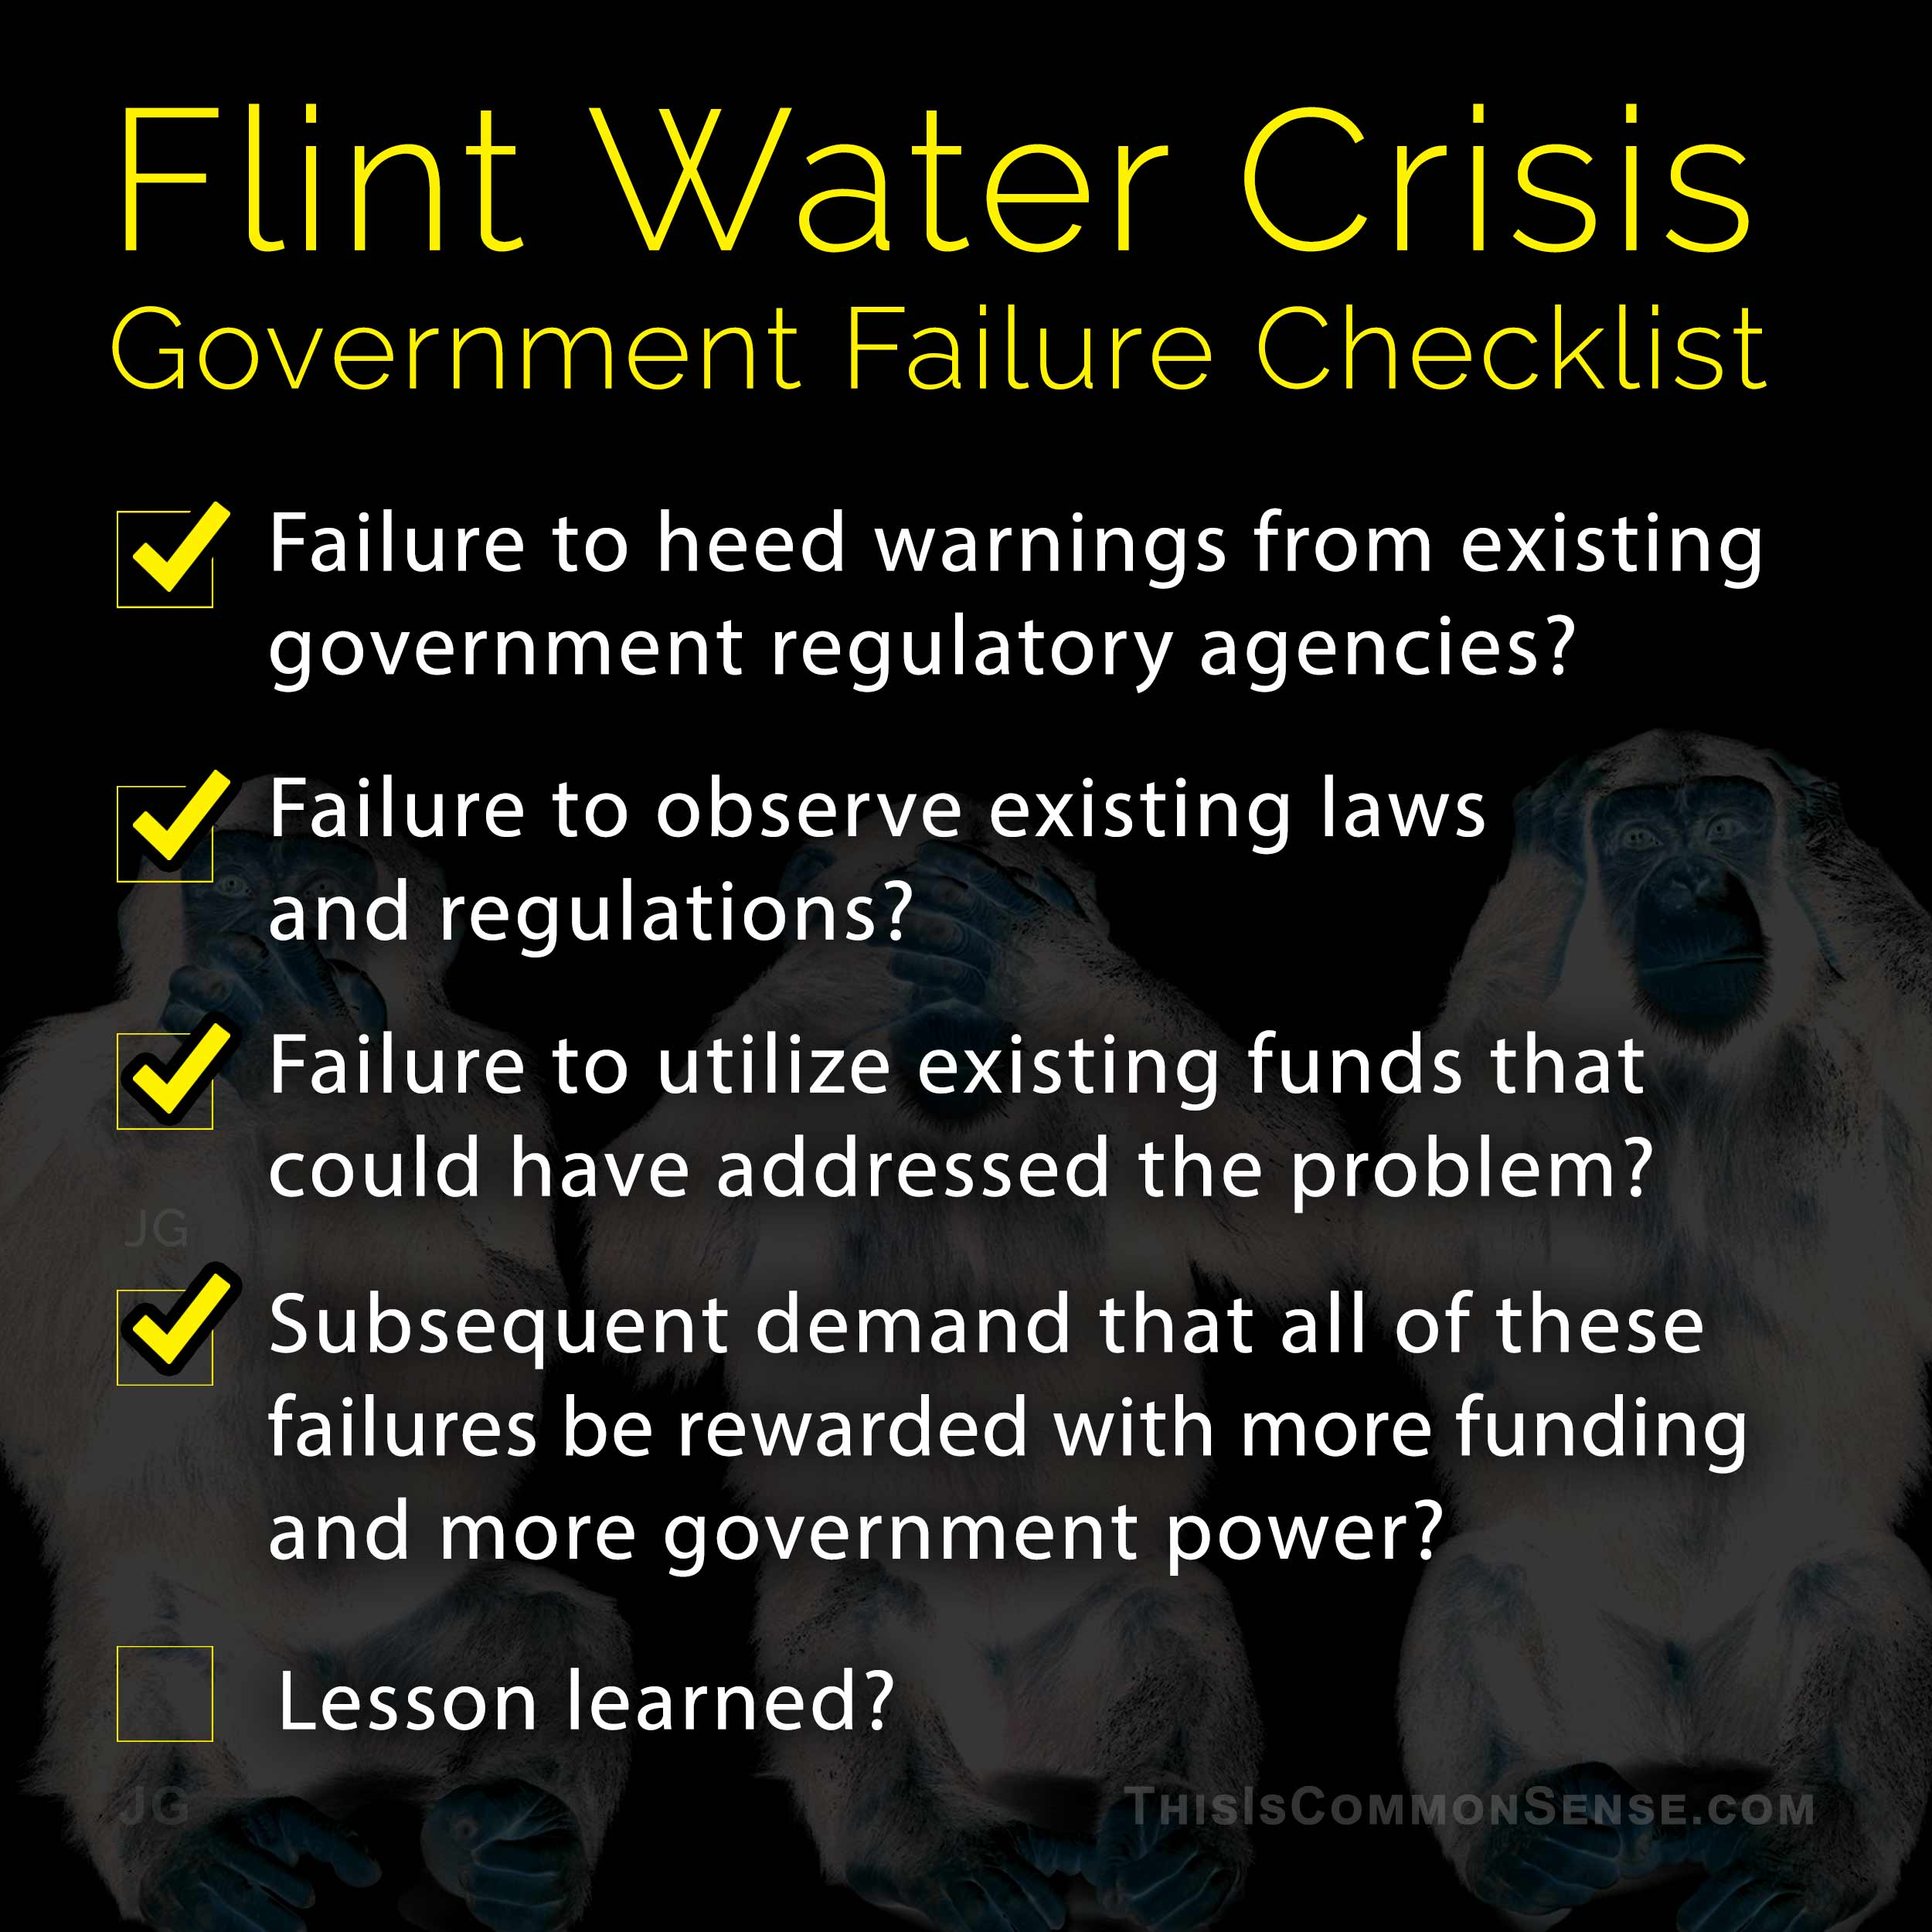 Flint, water, crisis, poison, government, free market, austerity, failure, Common Sense, Meme, James Gill, Paul Jacob